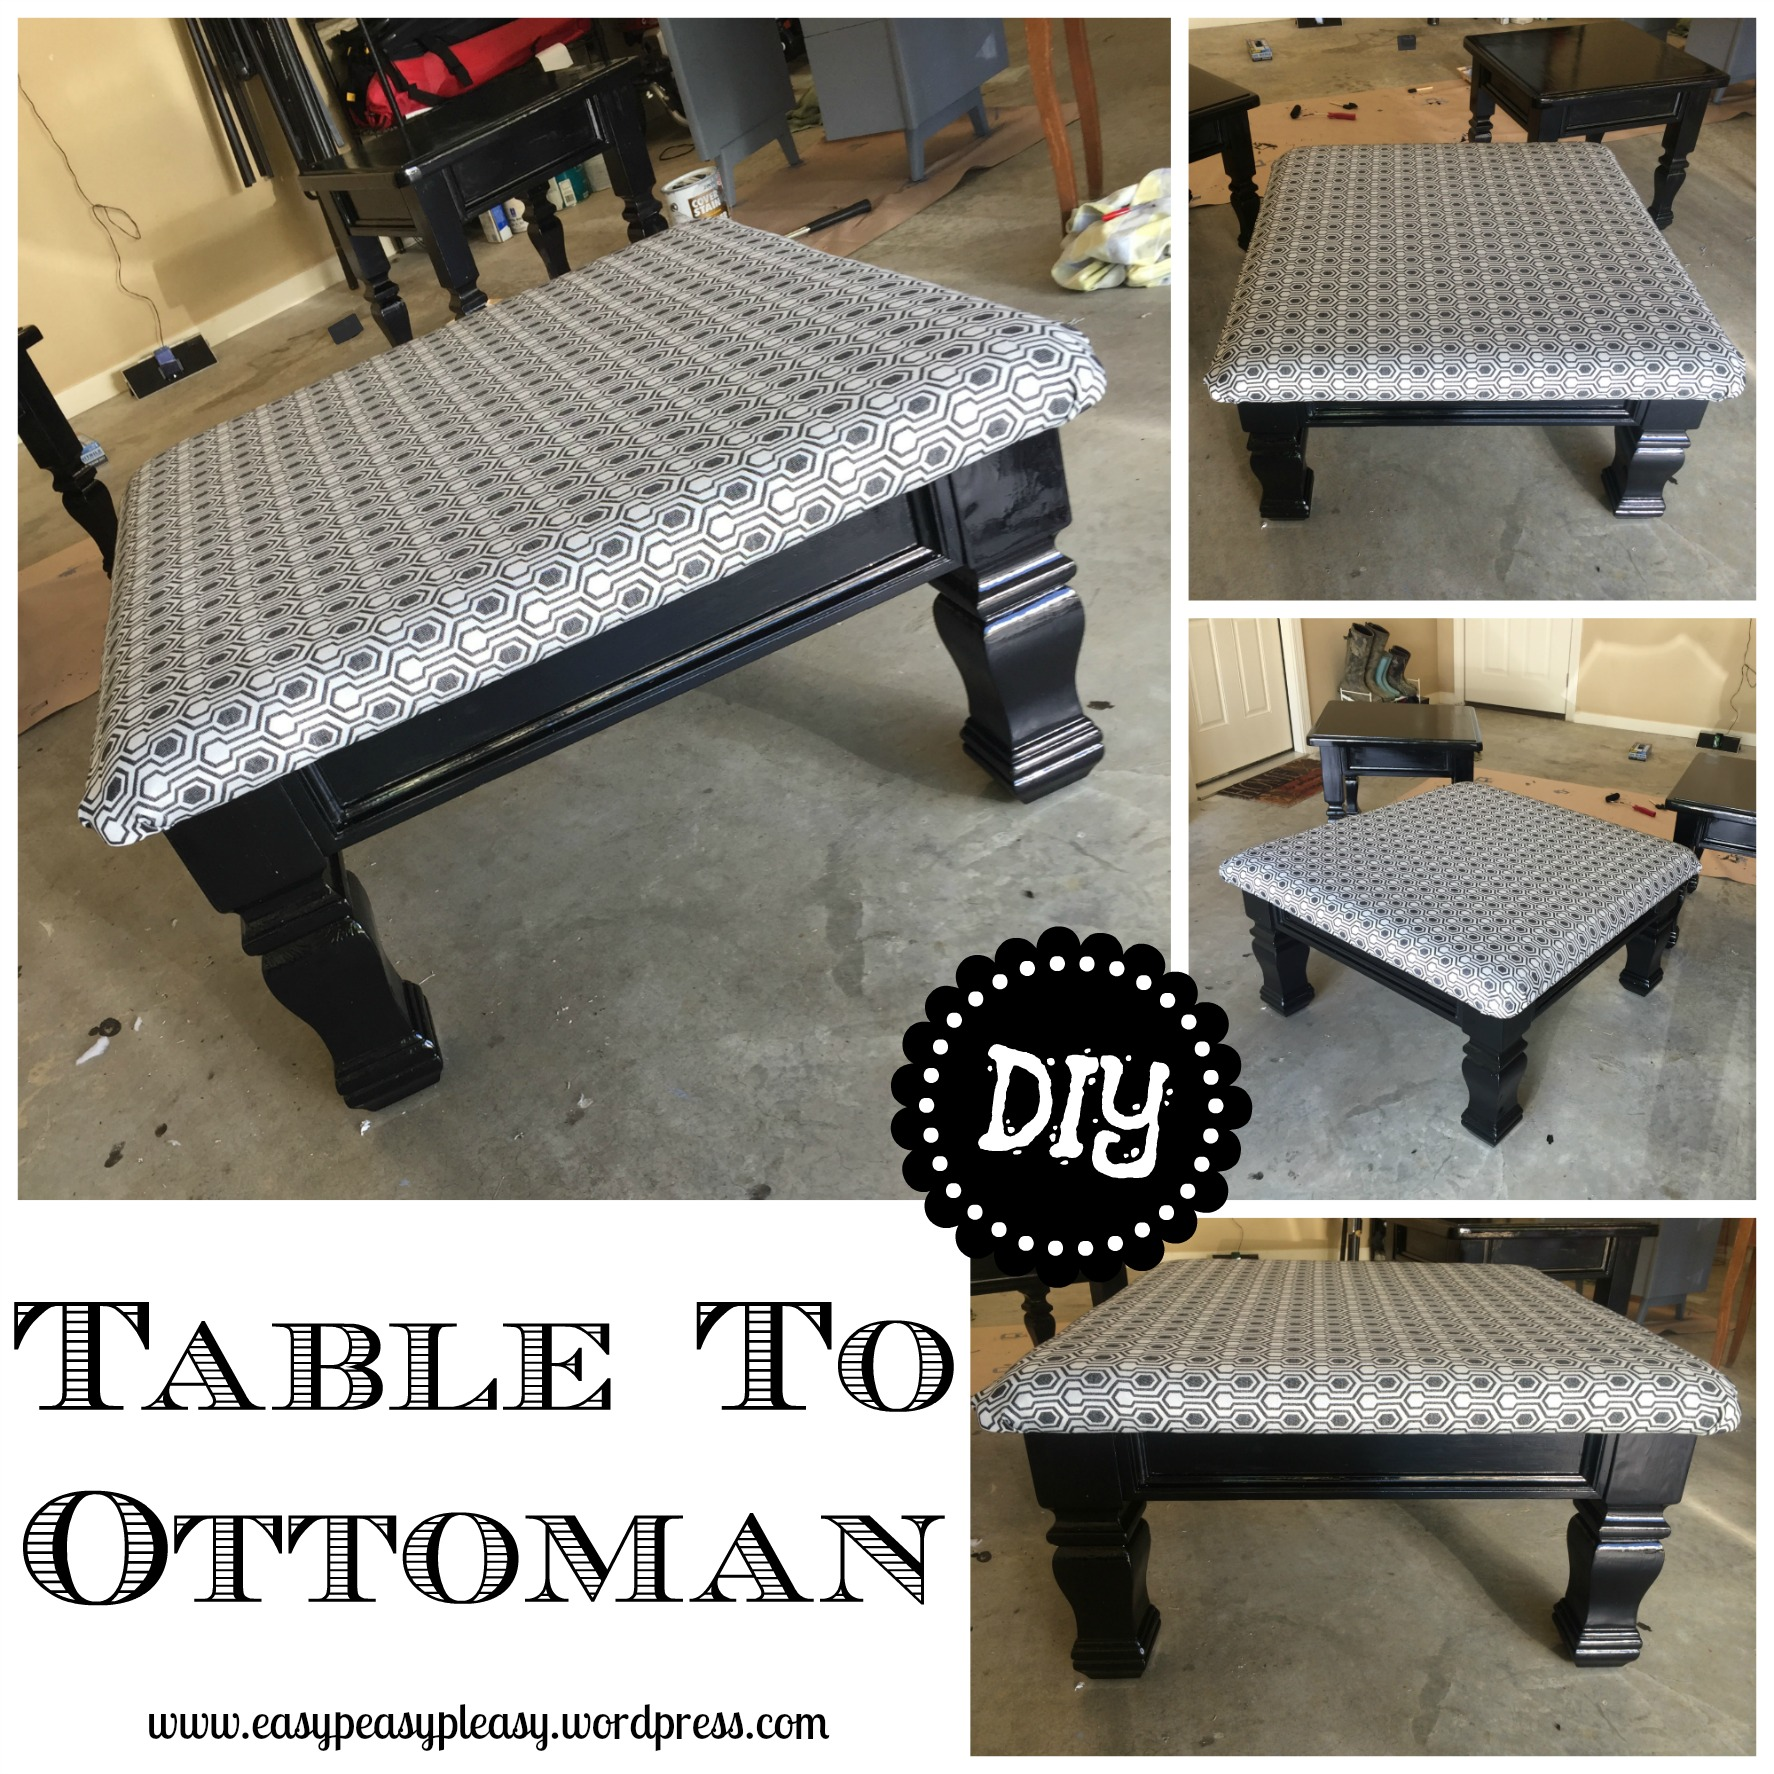 DIY Table To Ottoman And How To Paint Furniture Without Sanding